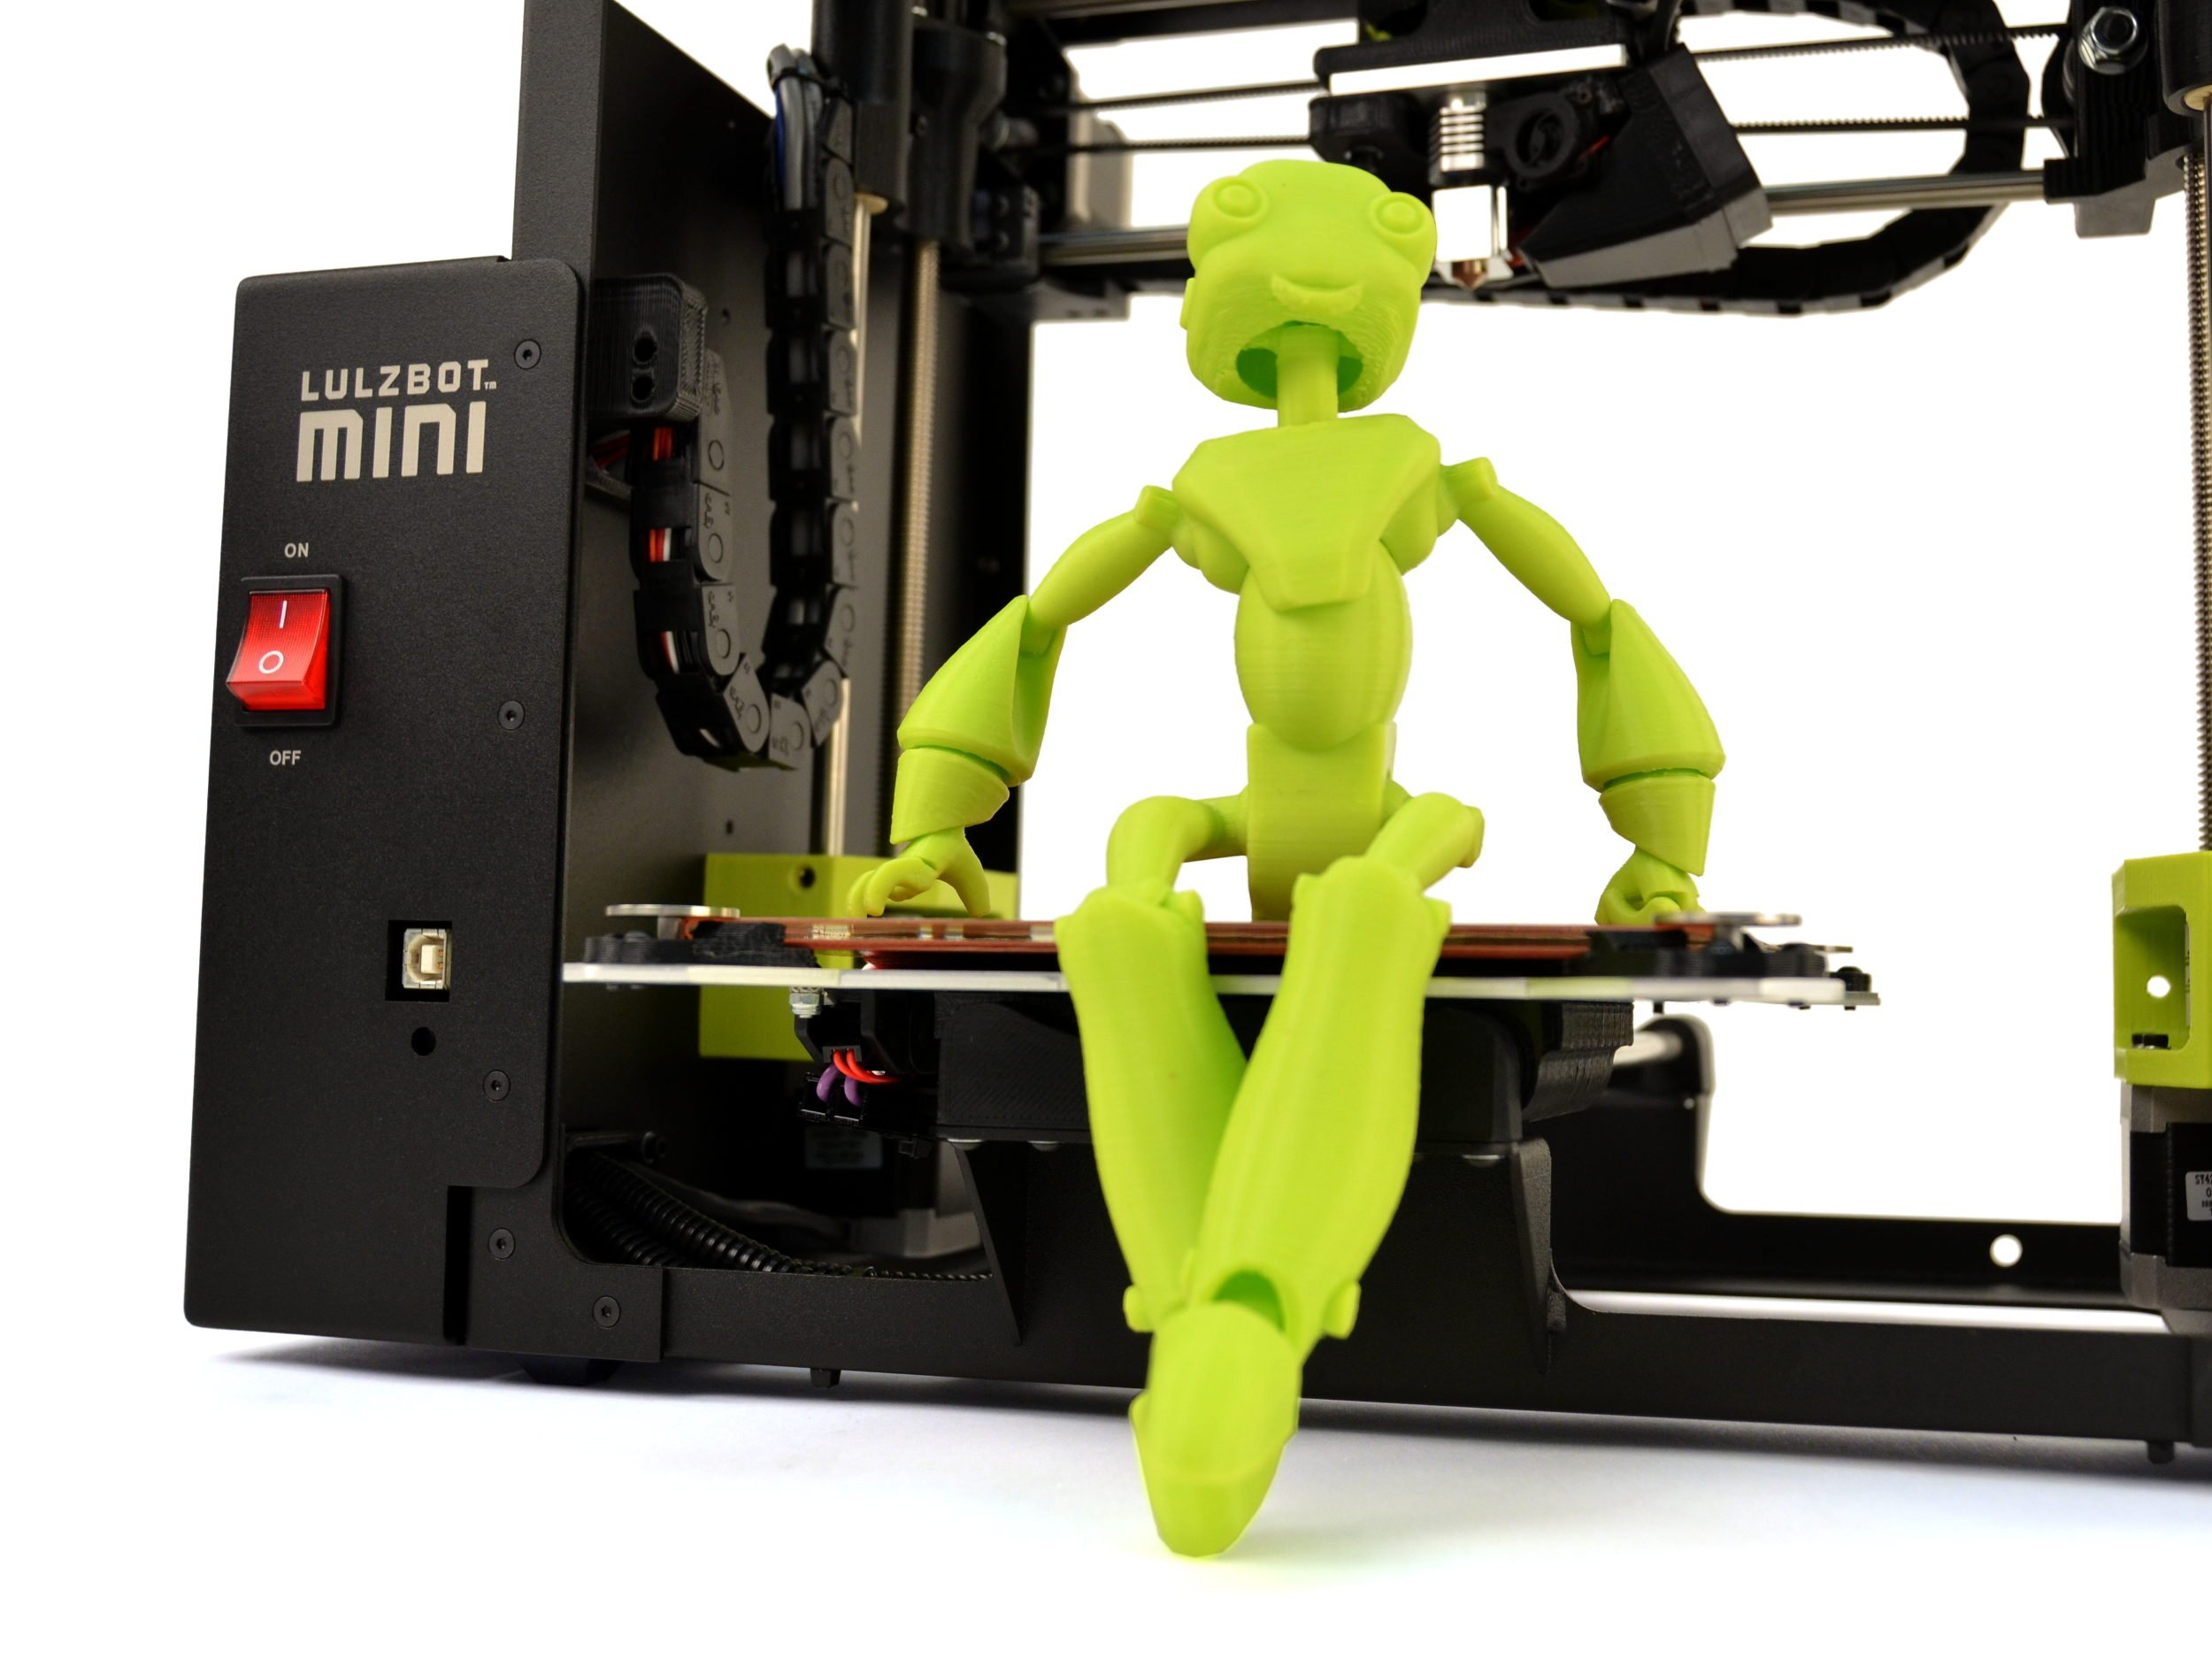 Lulzbot Robot Capture: An example of robotic technologies evolution.